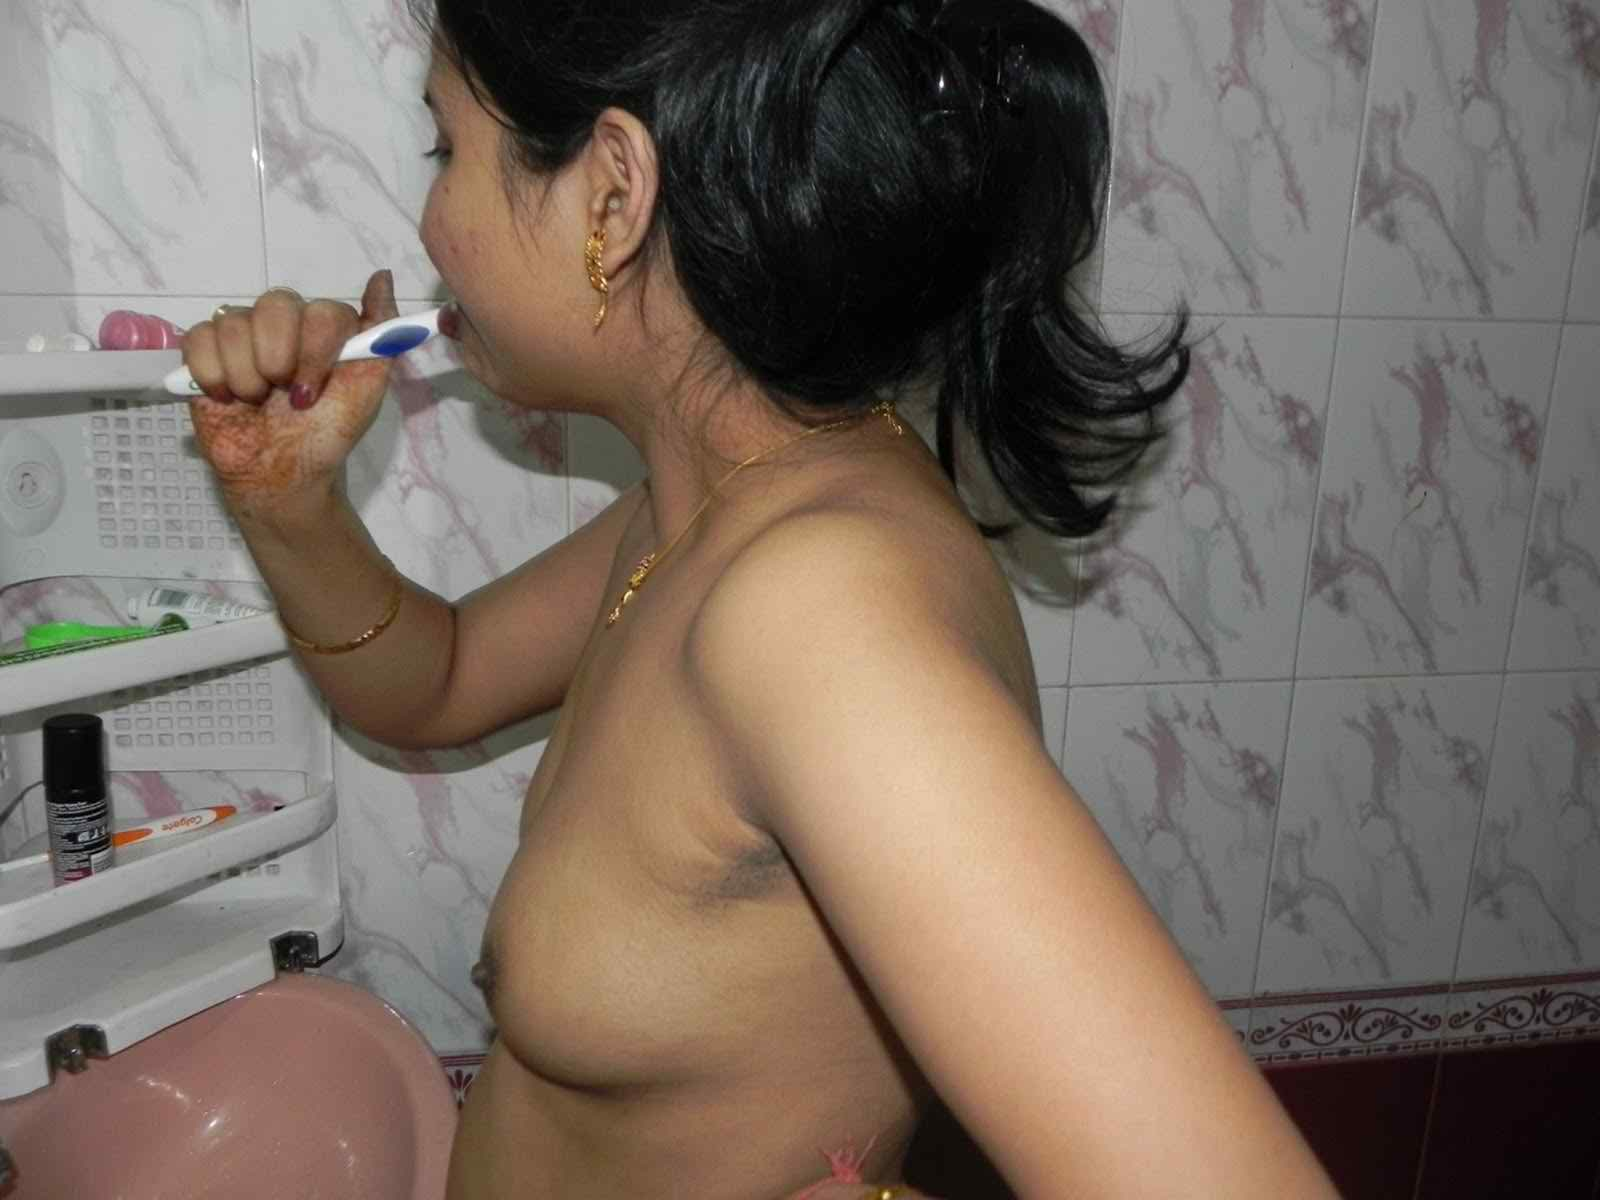 Bangladeshi Porn Video Download